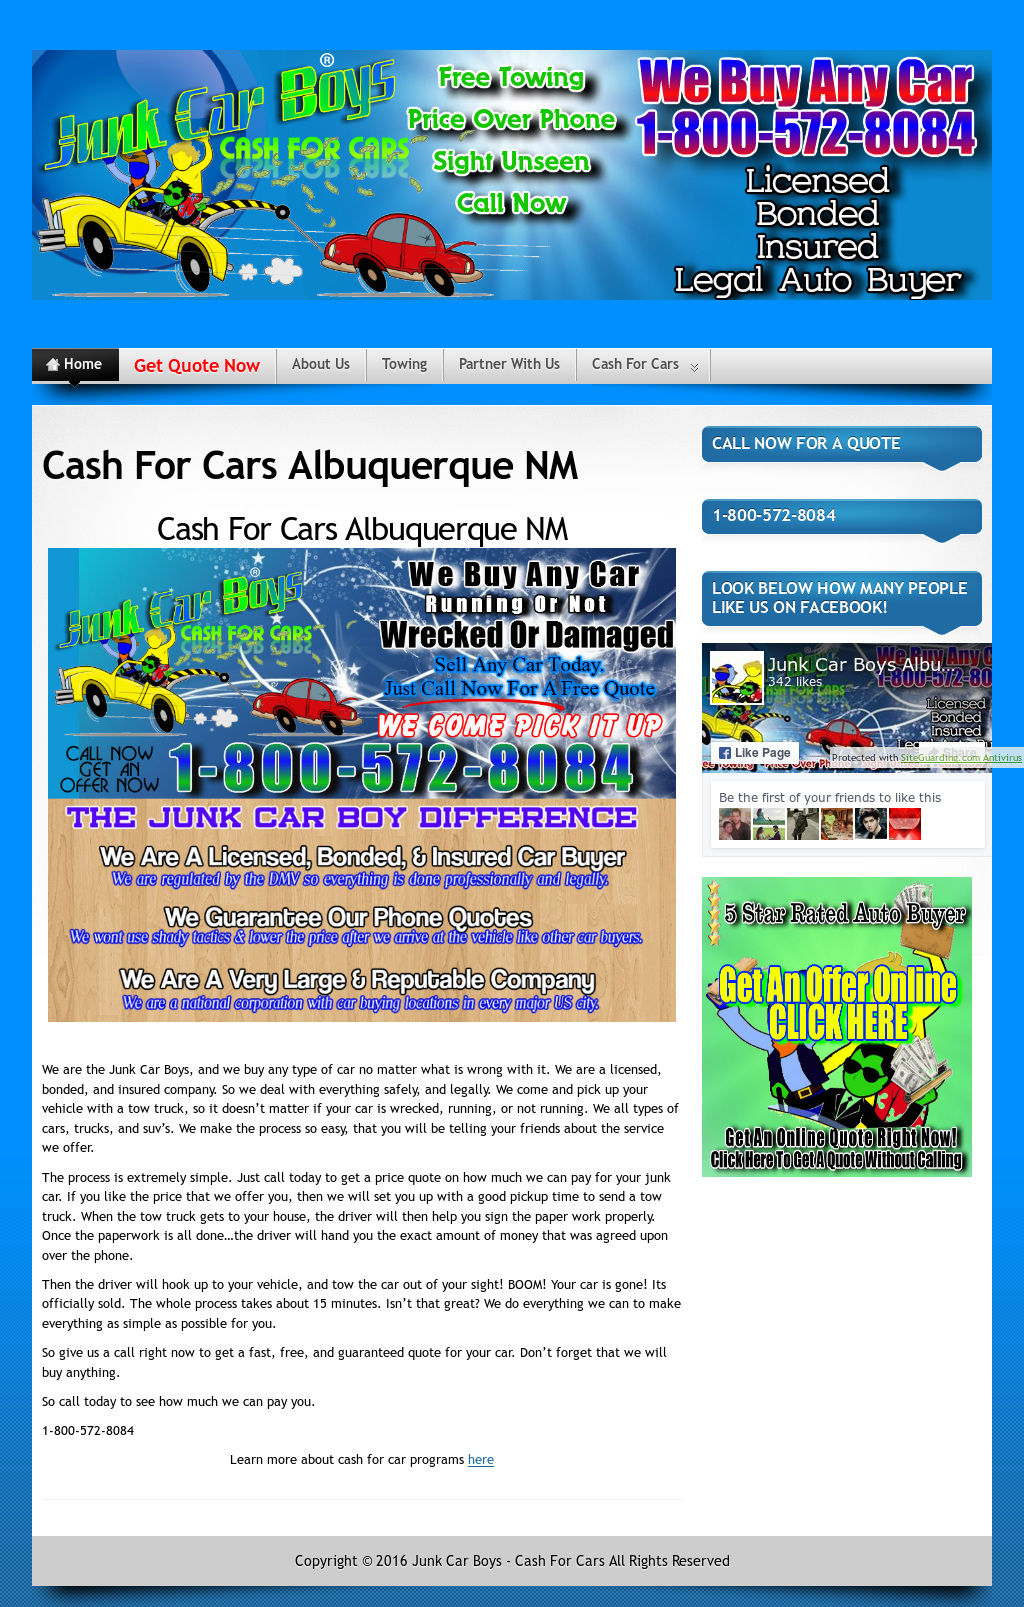 Junk Car Boys Albuquerque Nm - Cash For Cars Competitors, Revenue ...